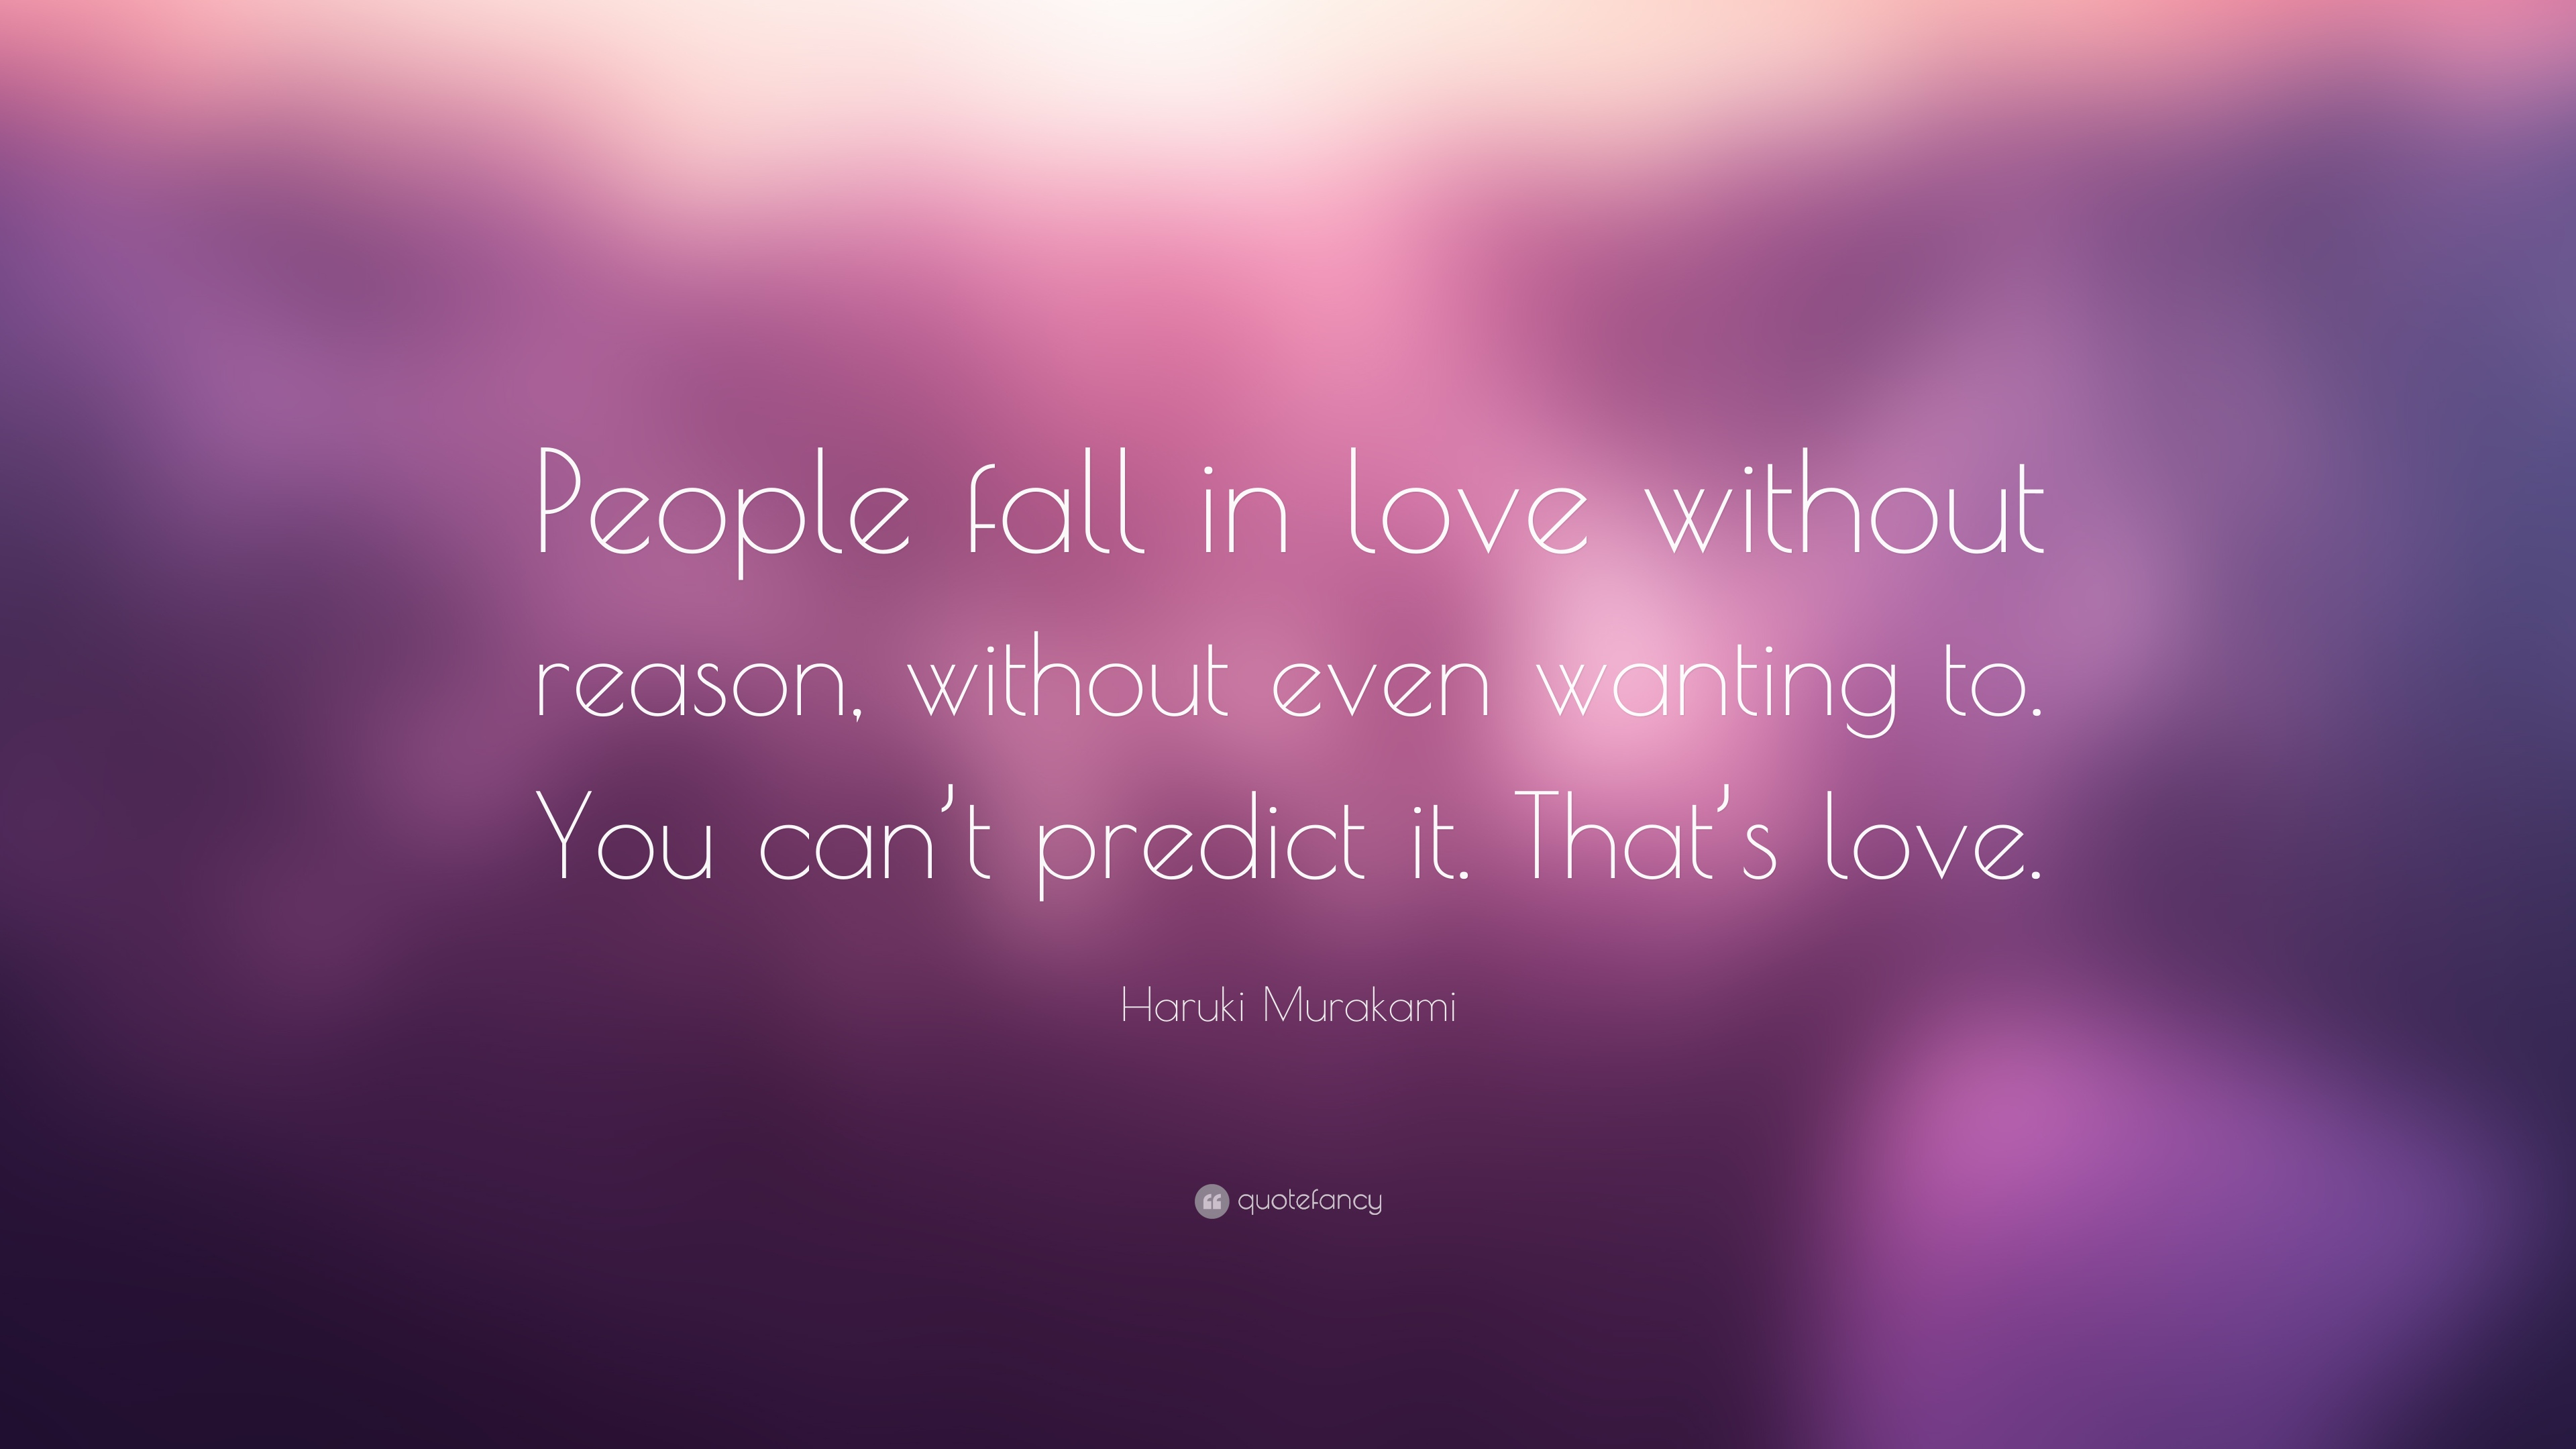 Love without any reason